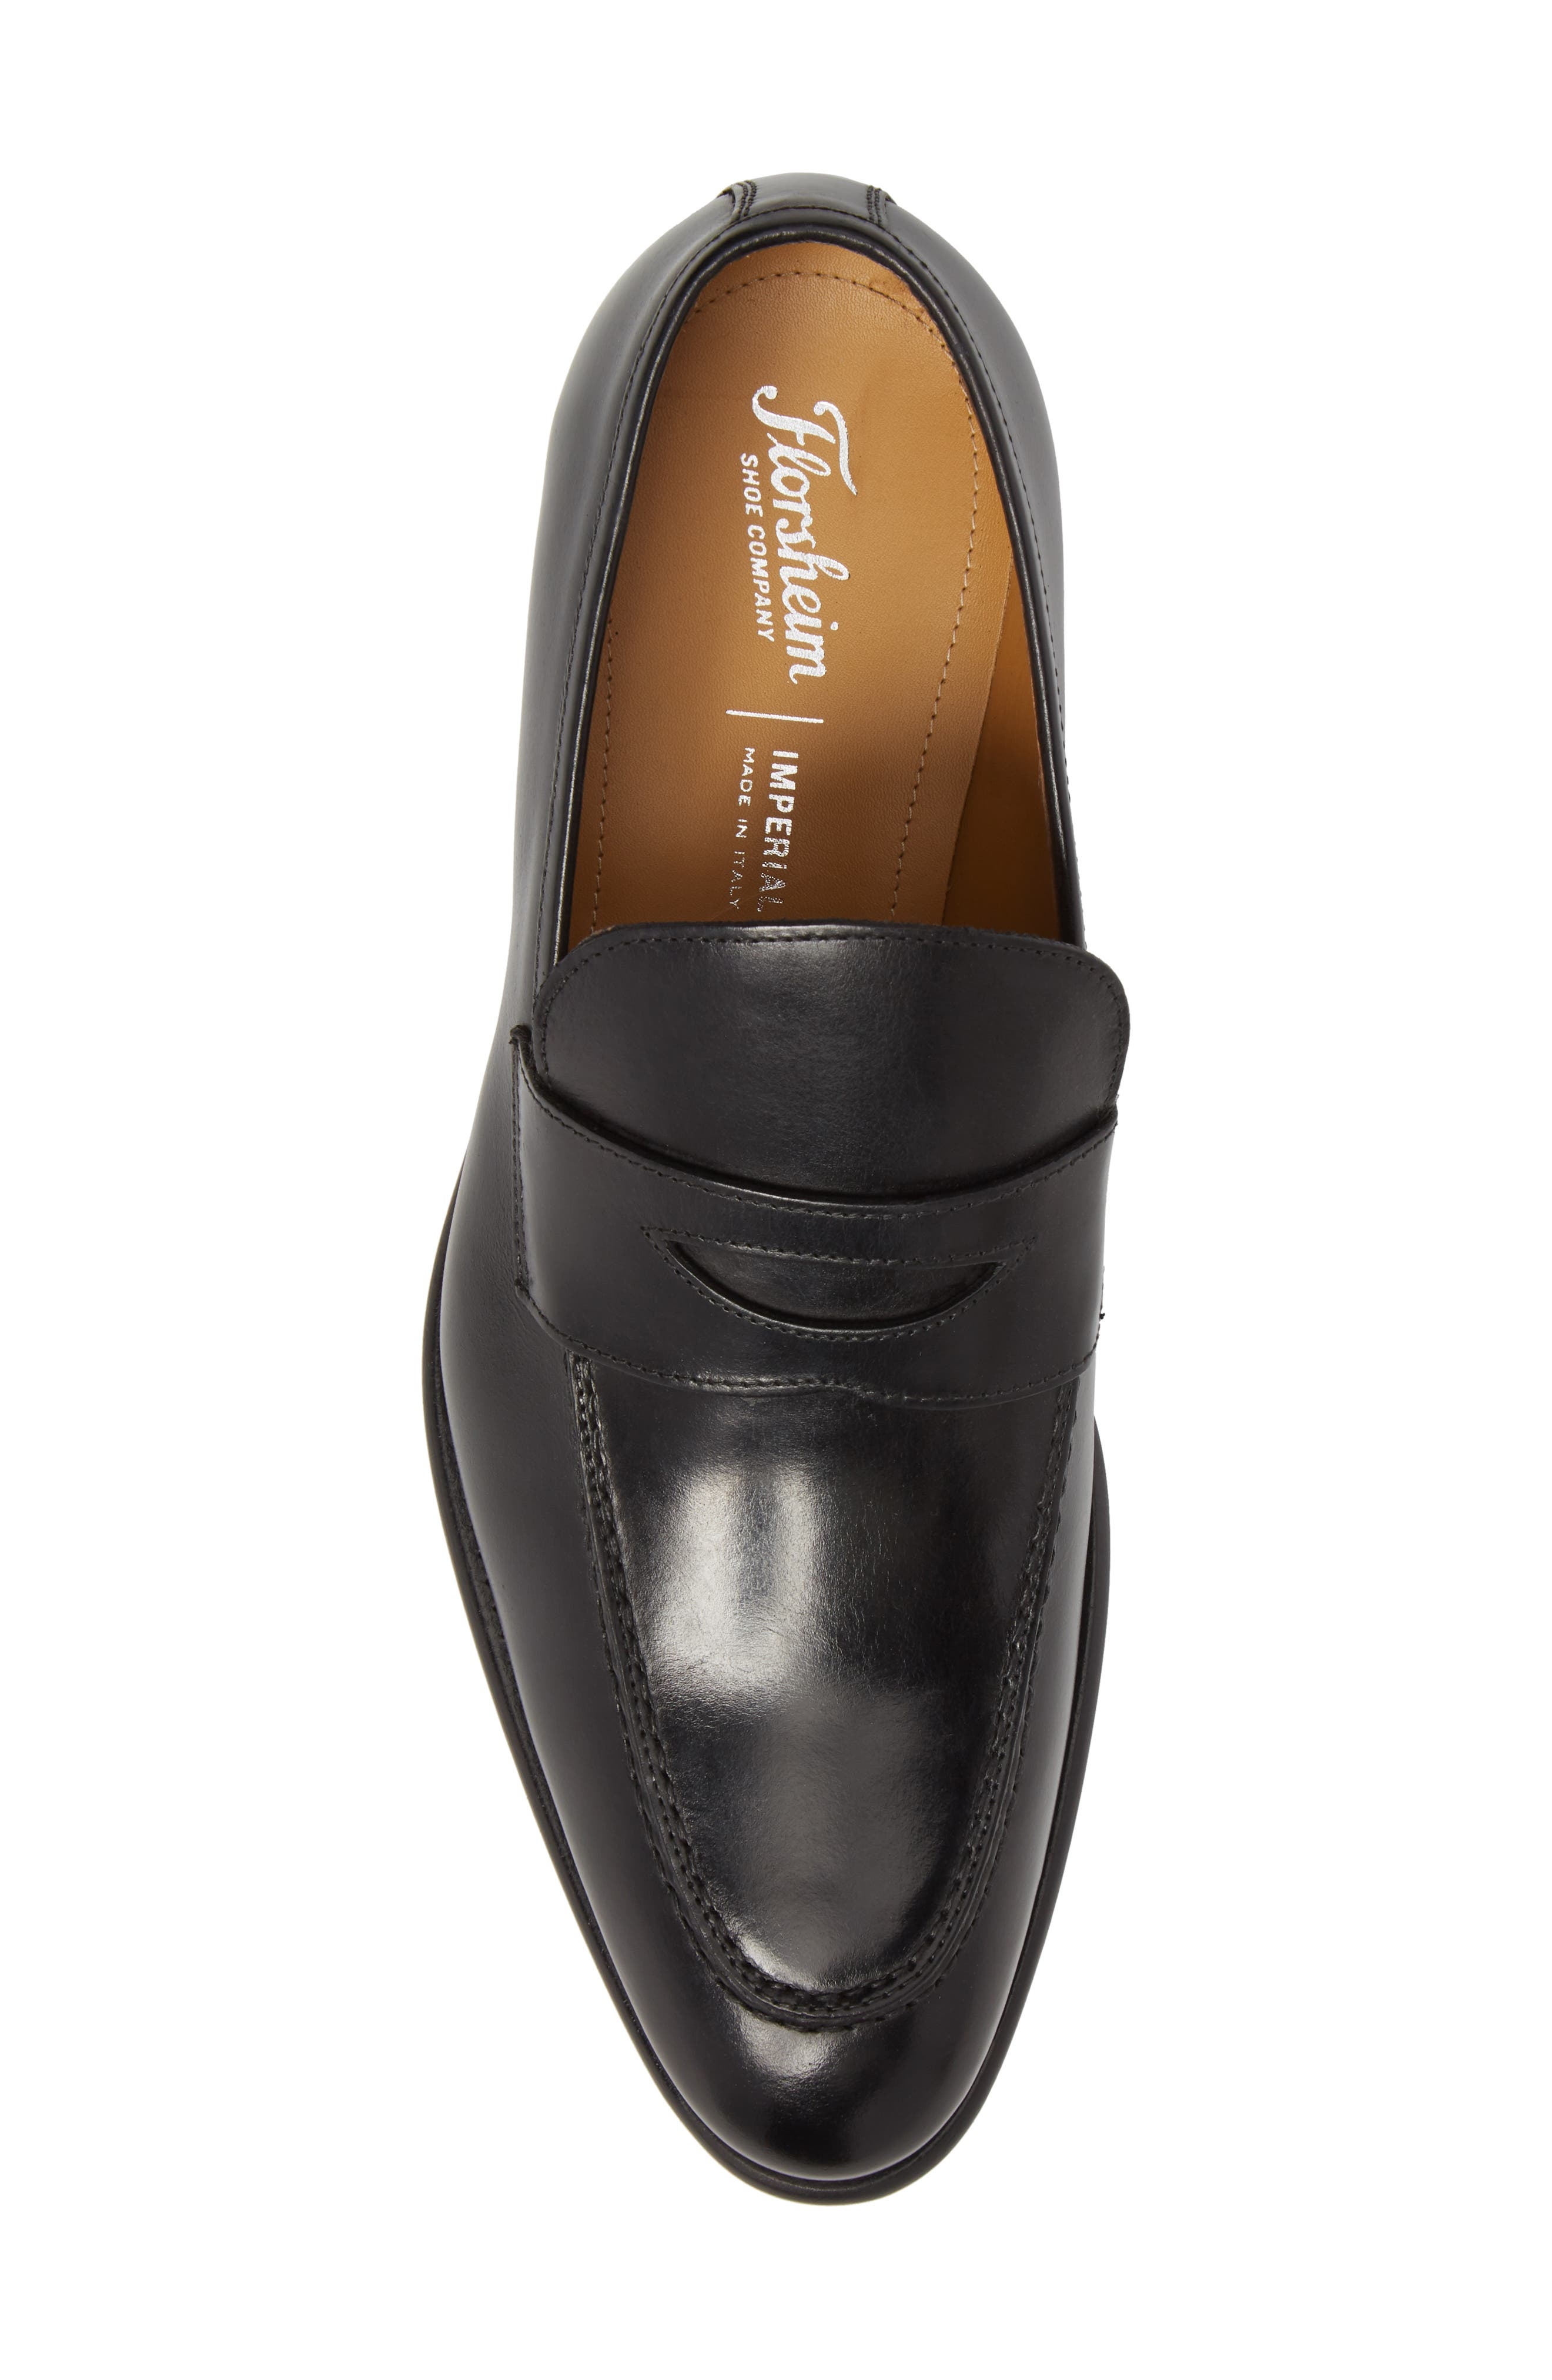 Imperial Venucci Apron Toe Penny Loafer,                             Alternate thumbnail 5, color,                             BLACK LEATHER